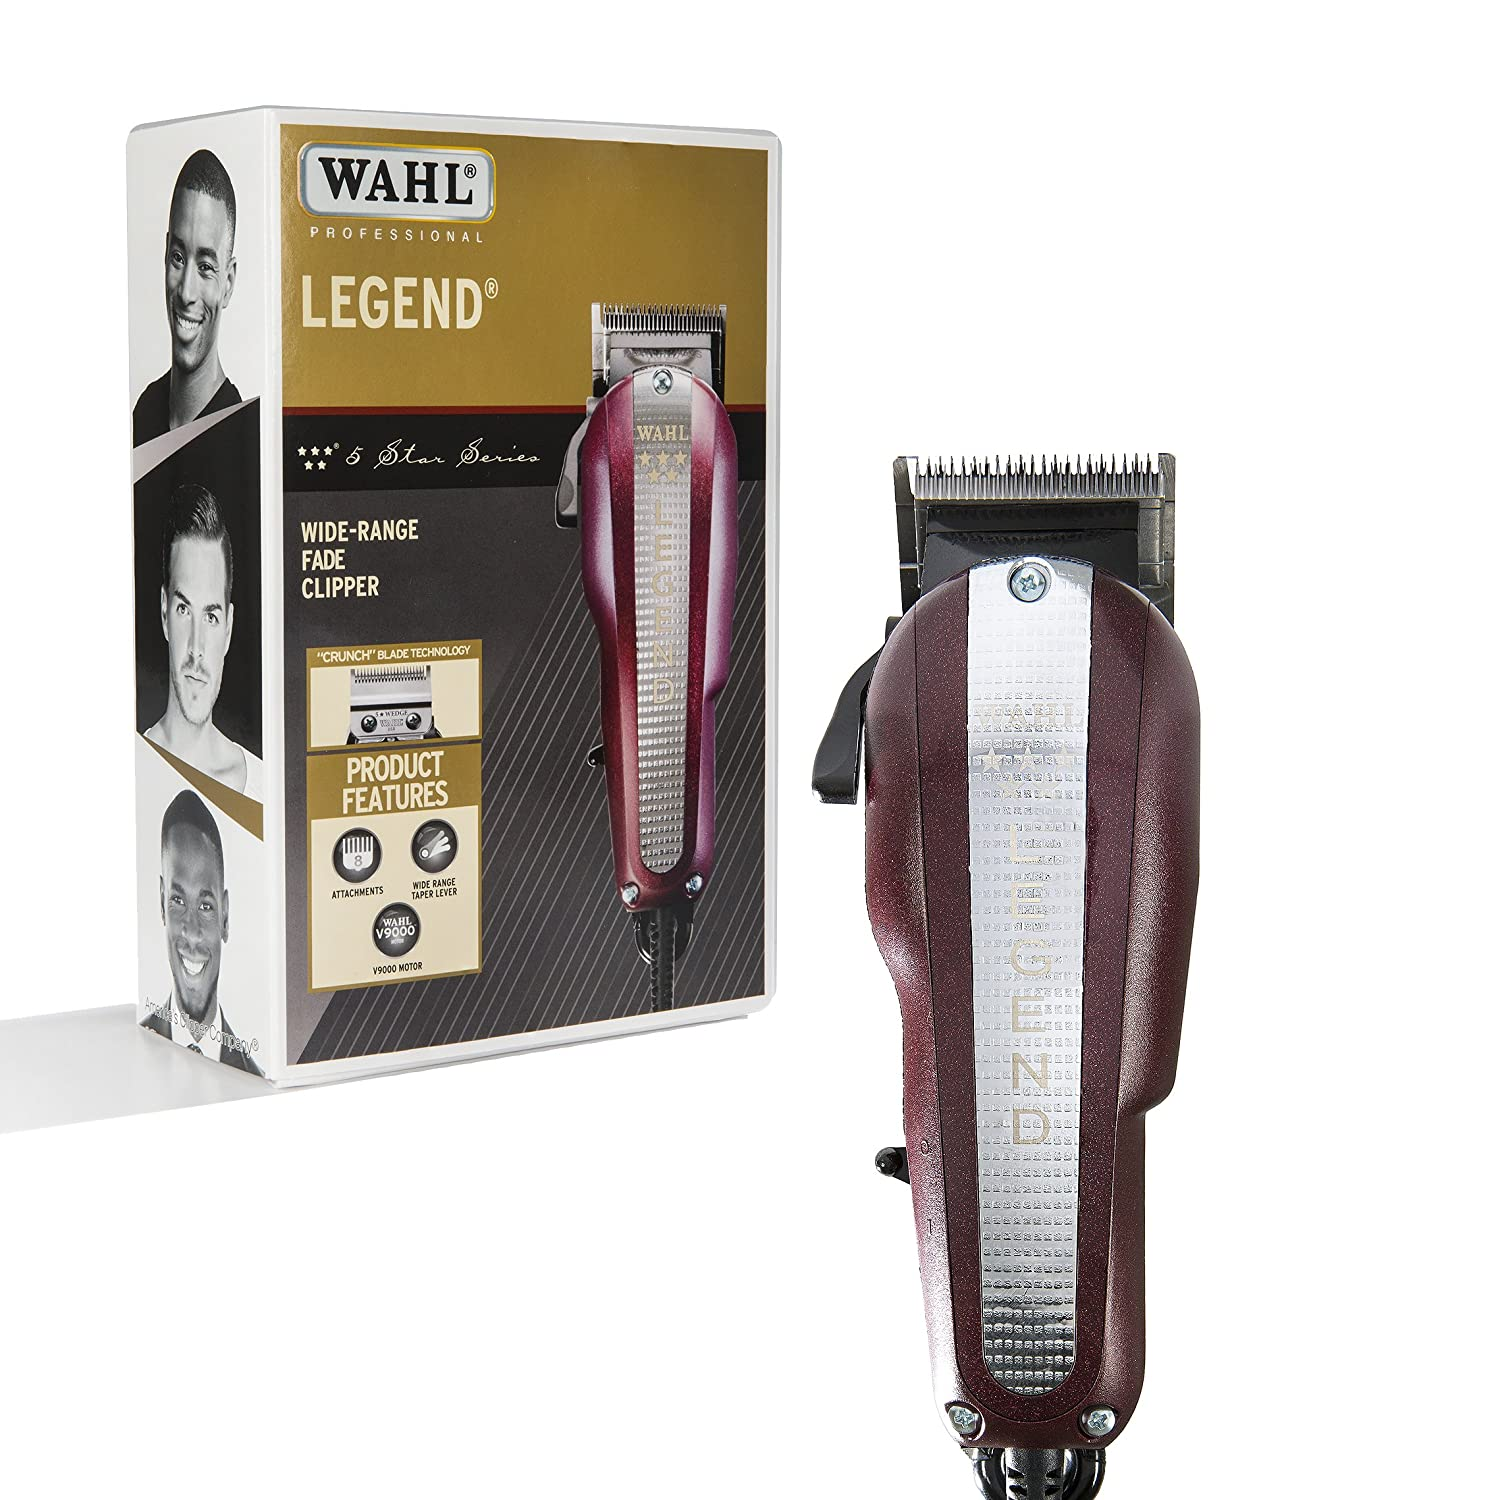 Wahl Professional New Look 5-Star Legend Clipper #8147